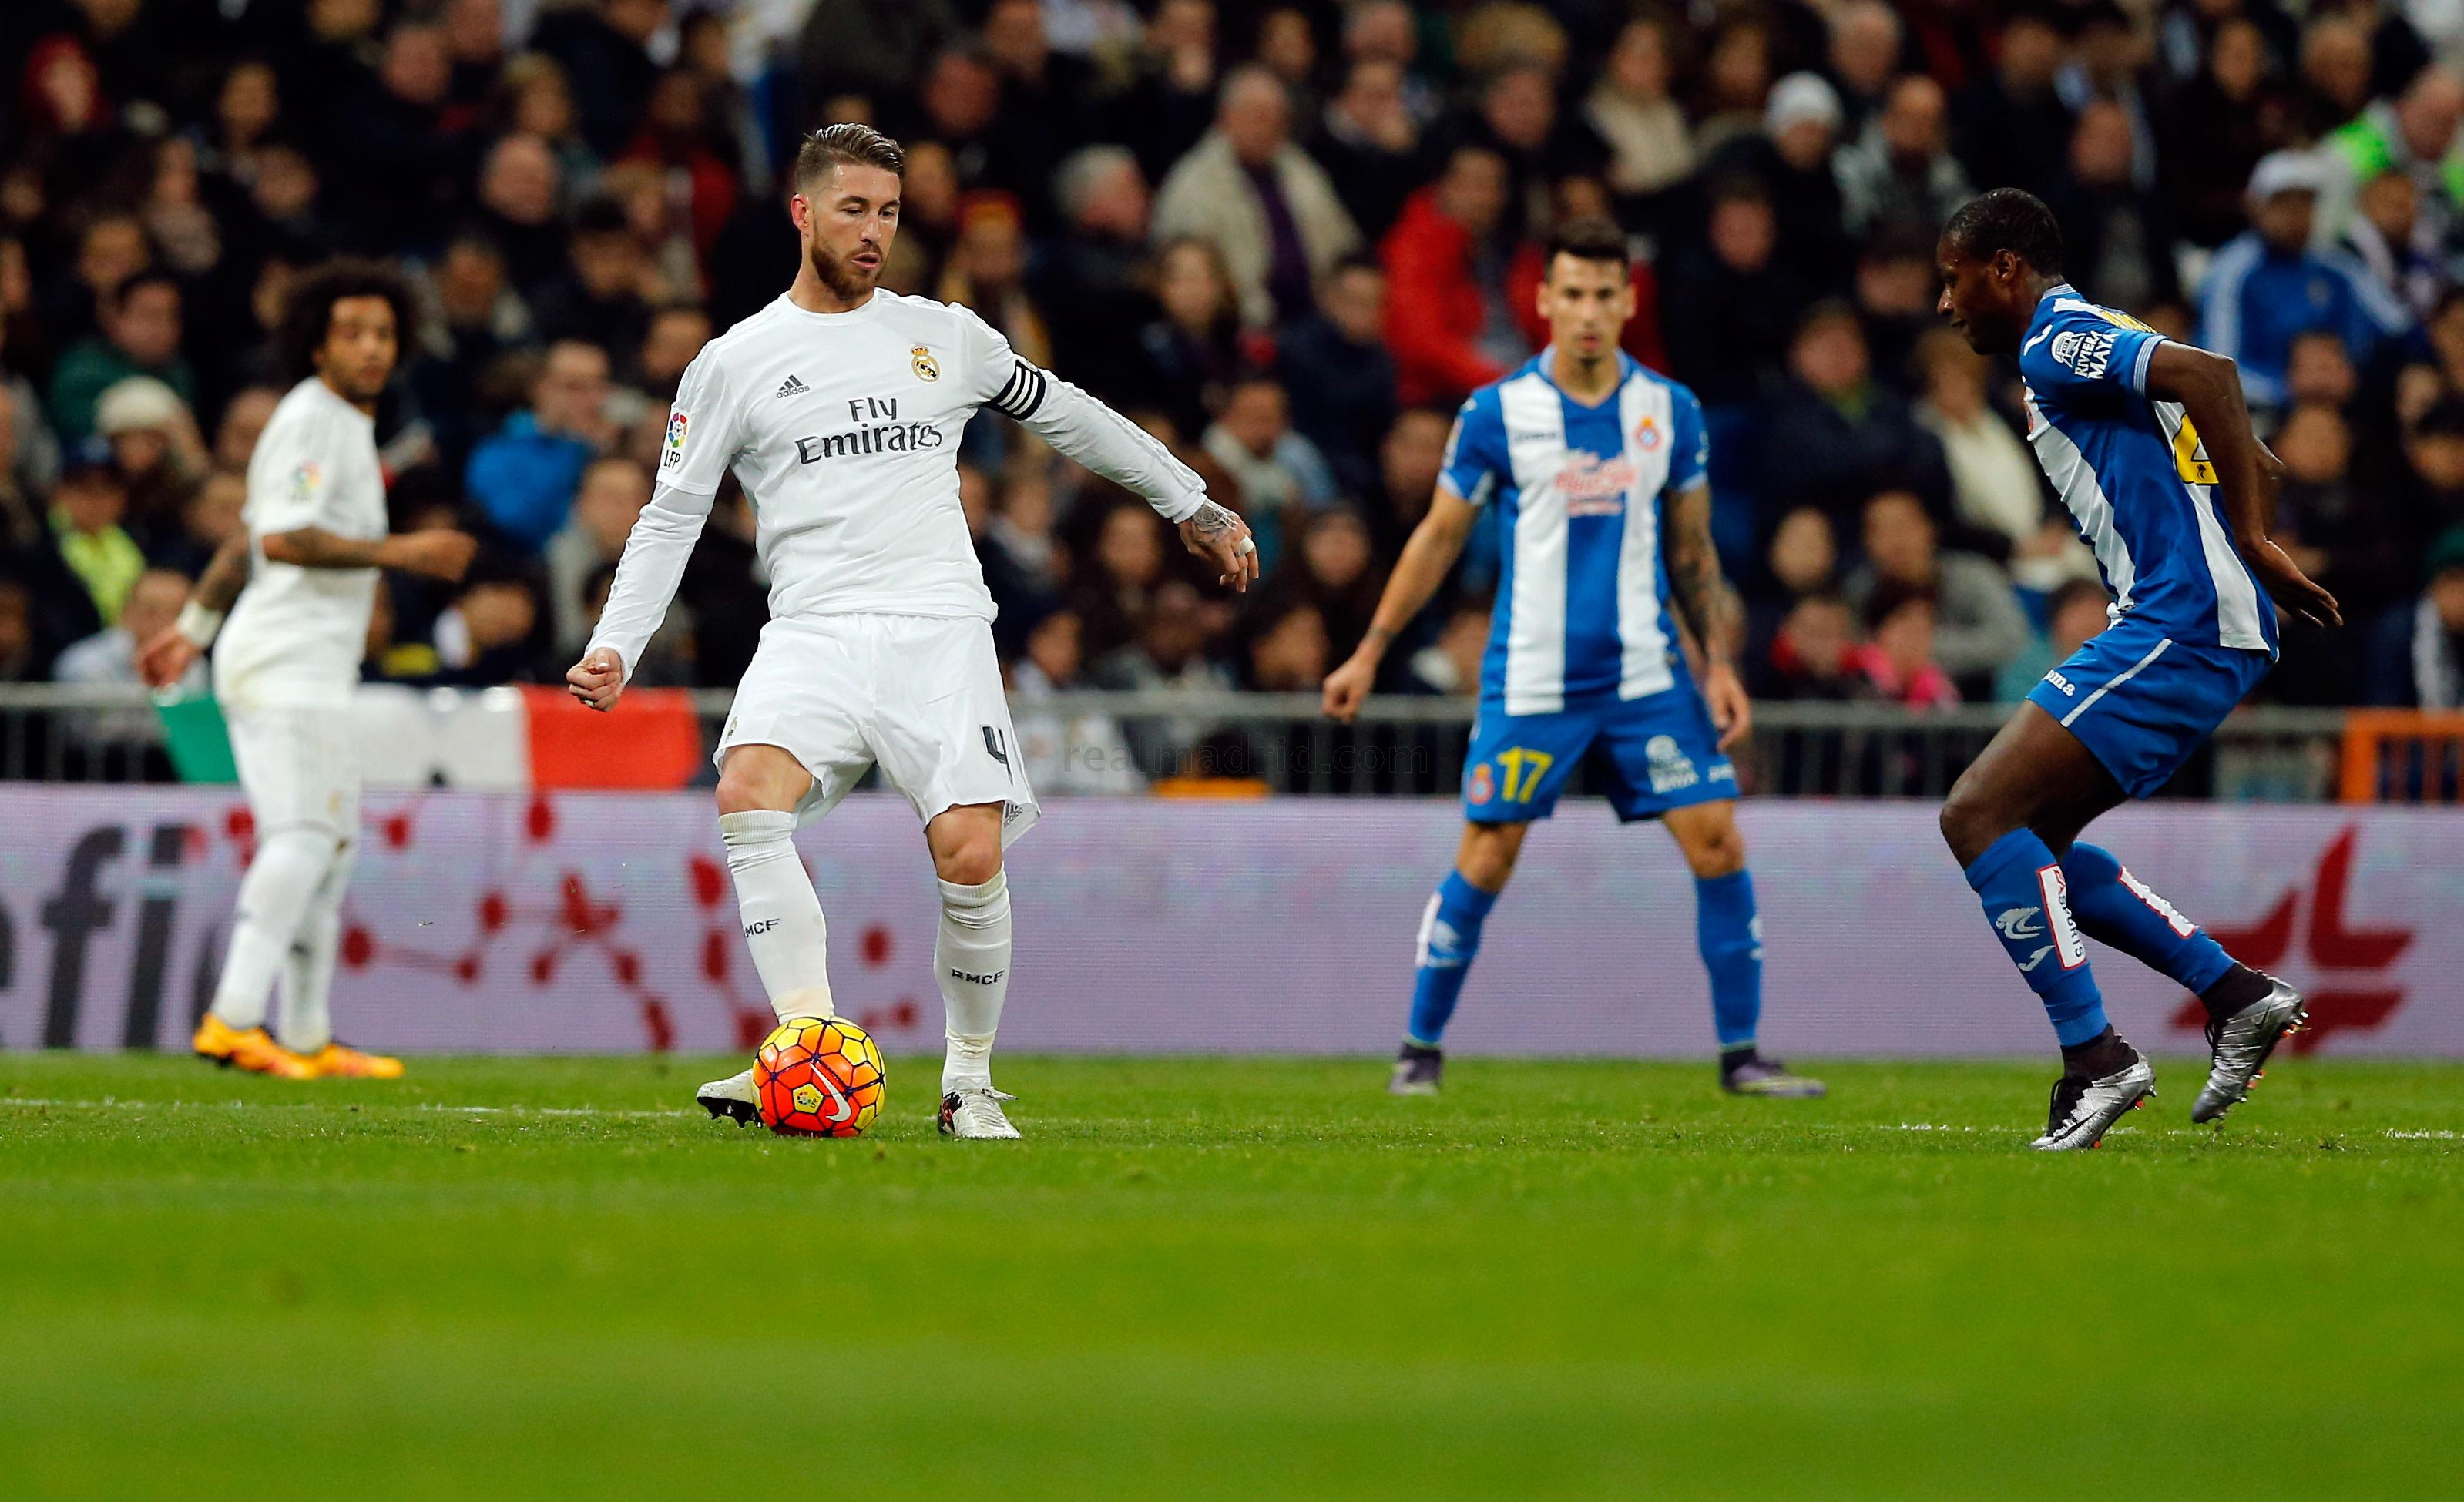 Real Madrid - Real Madrid - Espanyol - 31-01-2016